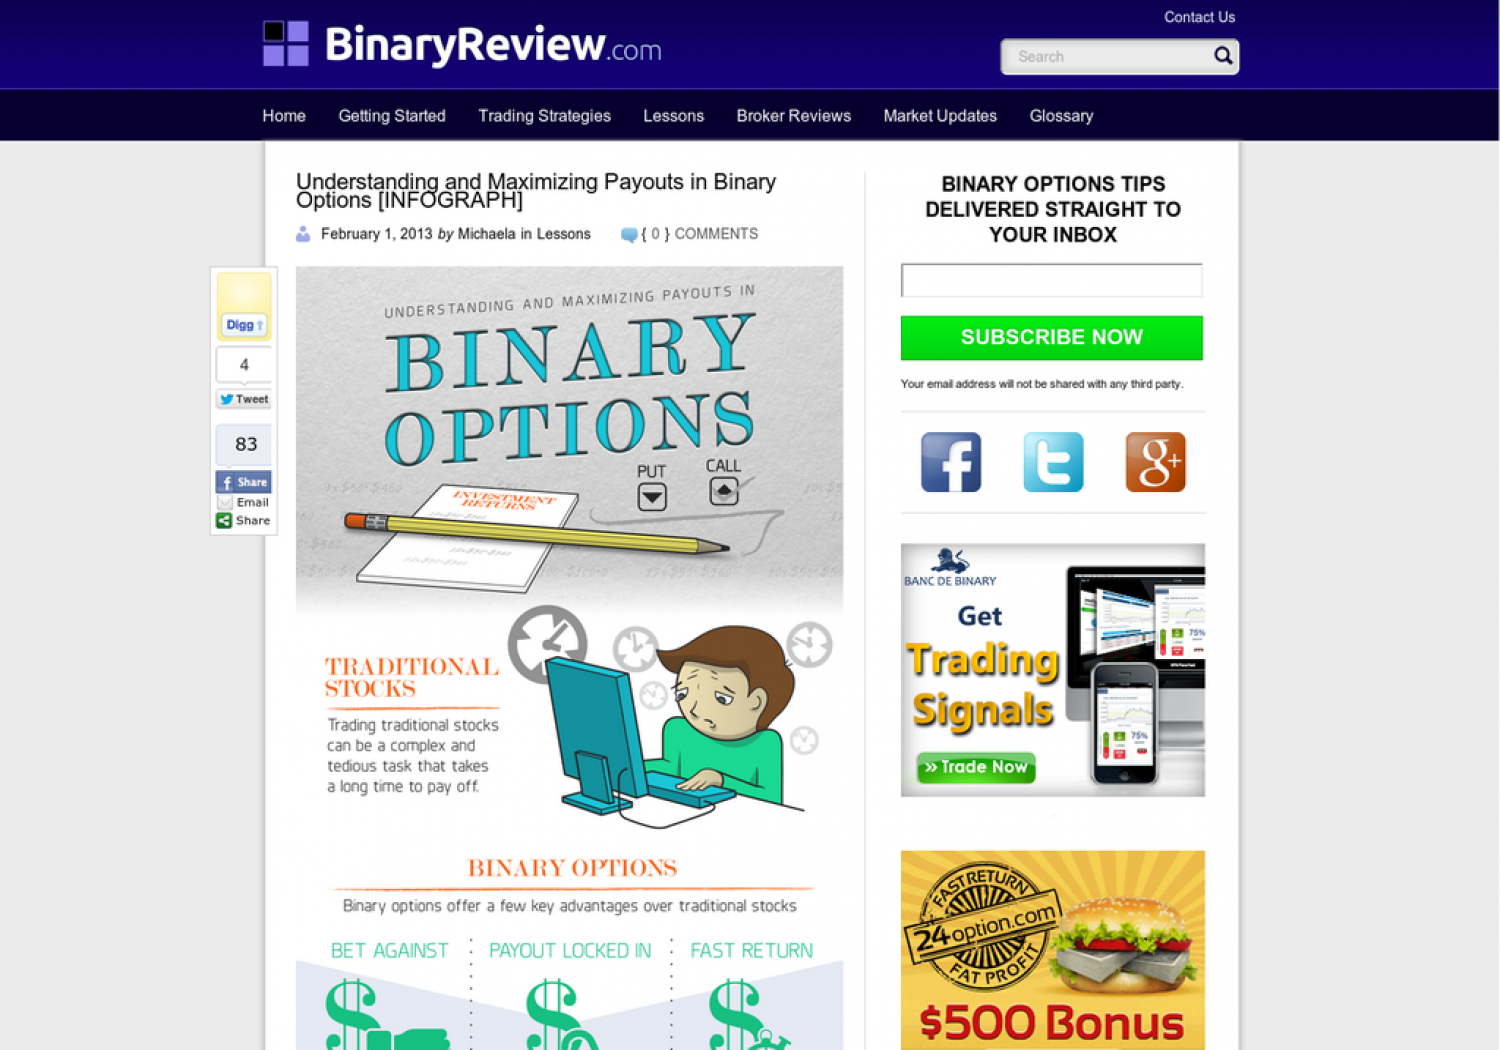 Binary options software providers